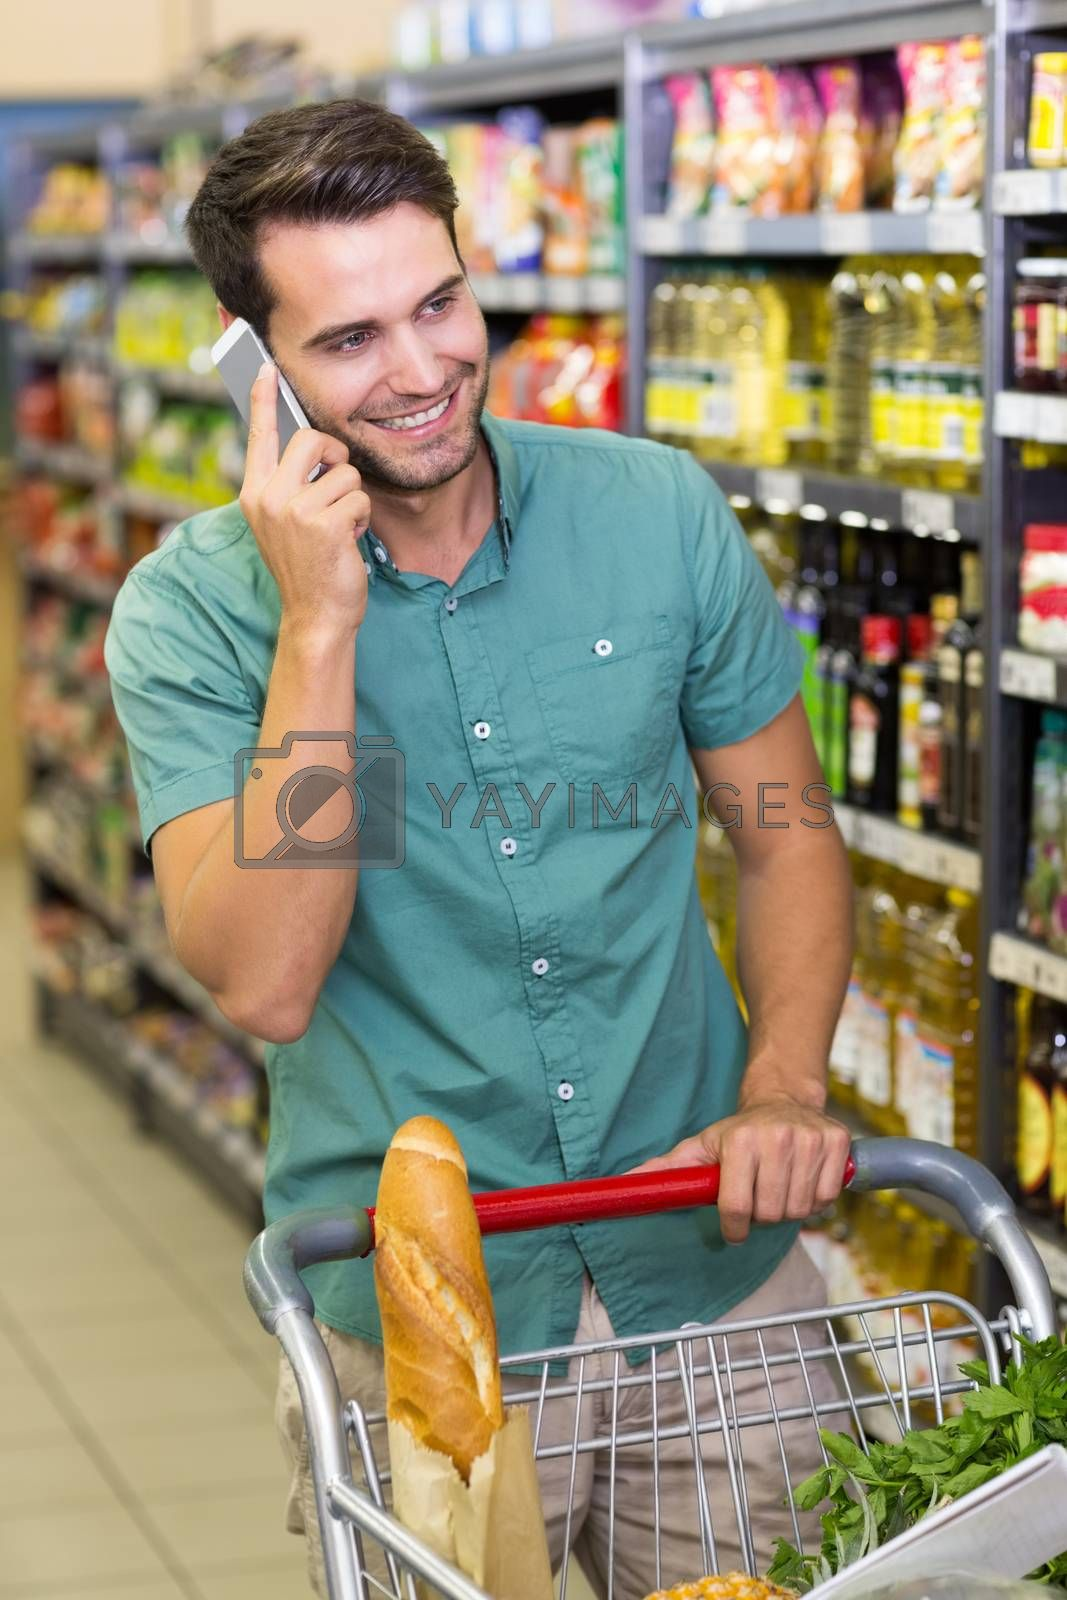 Royalty free image of Smiling man buy food and phoning  by Wavebreakmedia